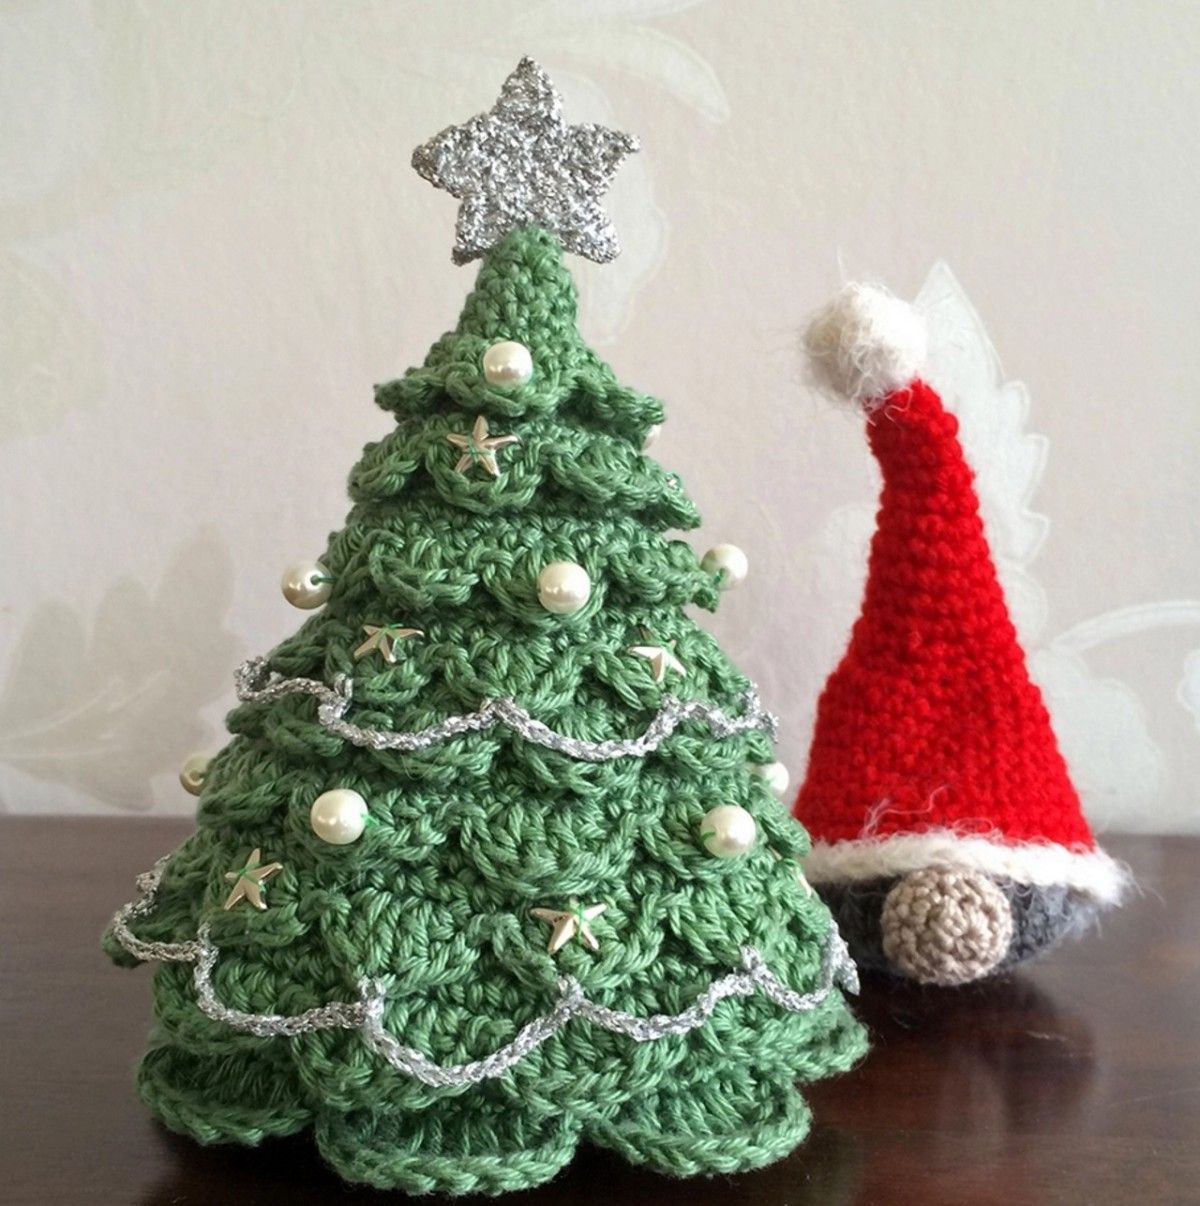 Christmas crochet tree pattern the best ideas crochet tree tree christmas crochet tree pattern the best ideas bankloansurffo Choice Image